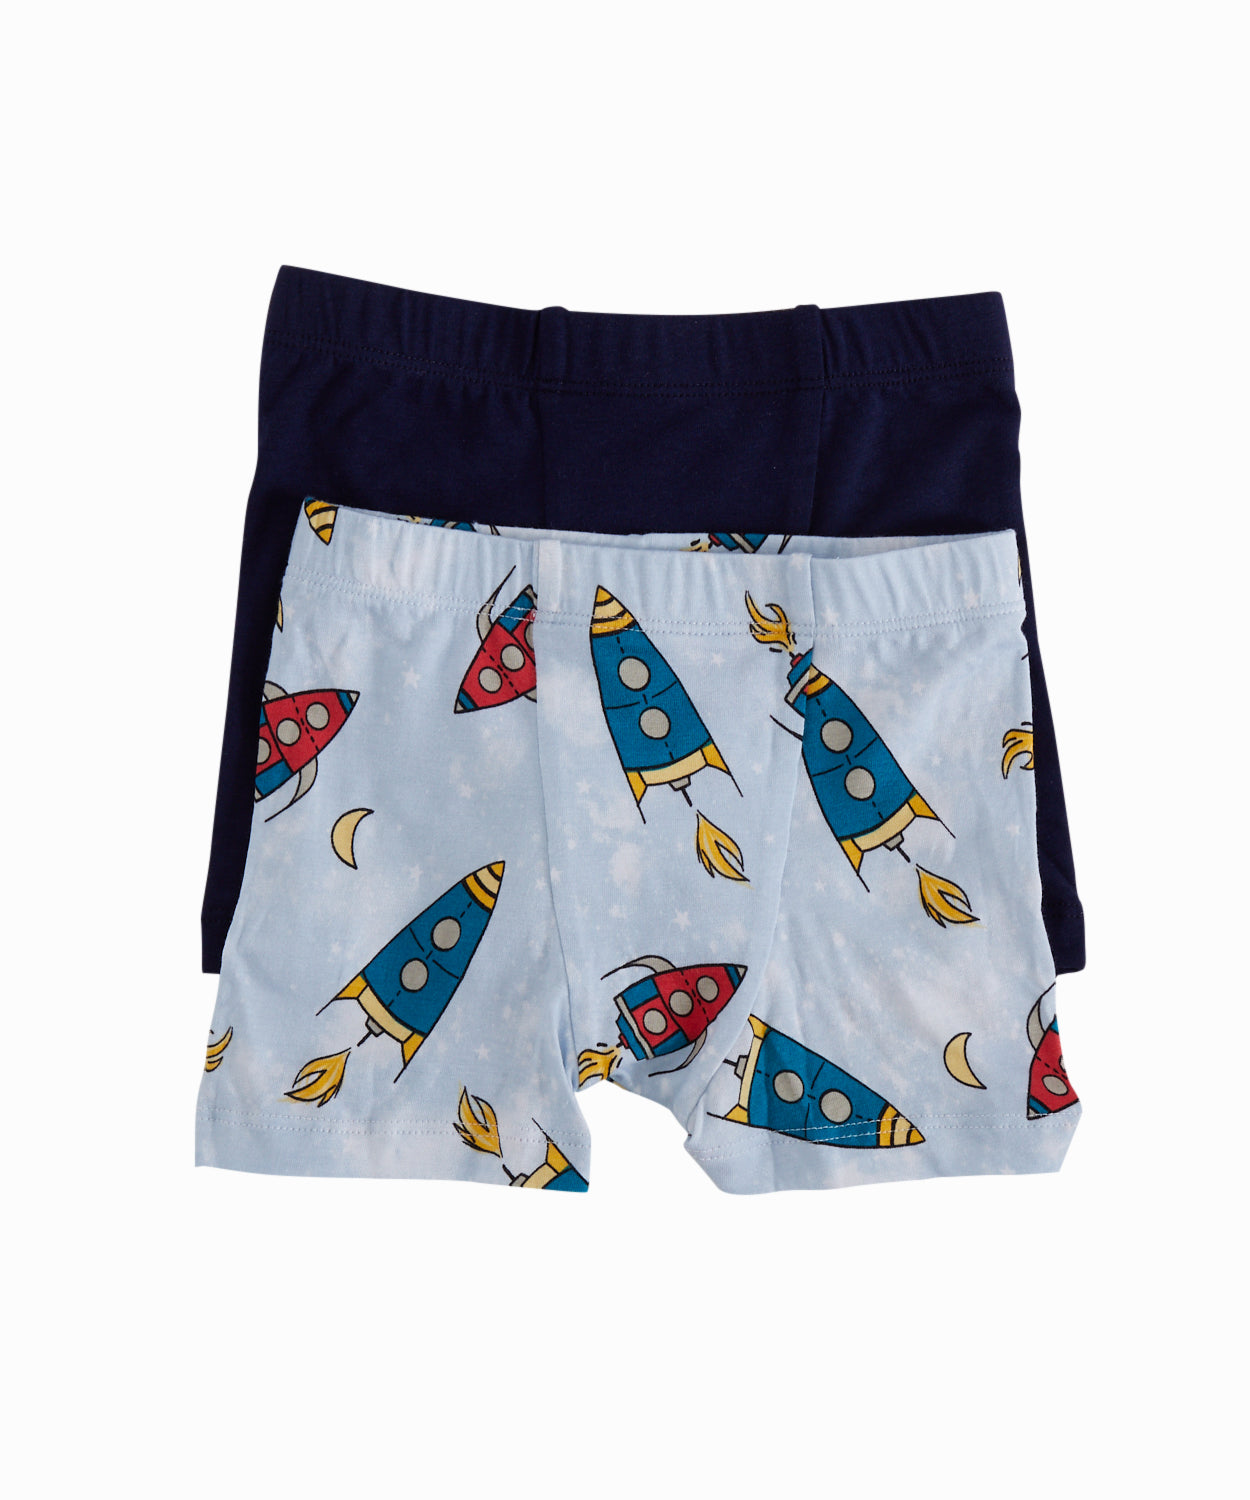 Rockets Print Set of 2 Boxers